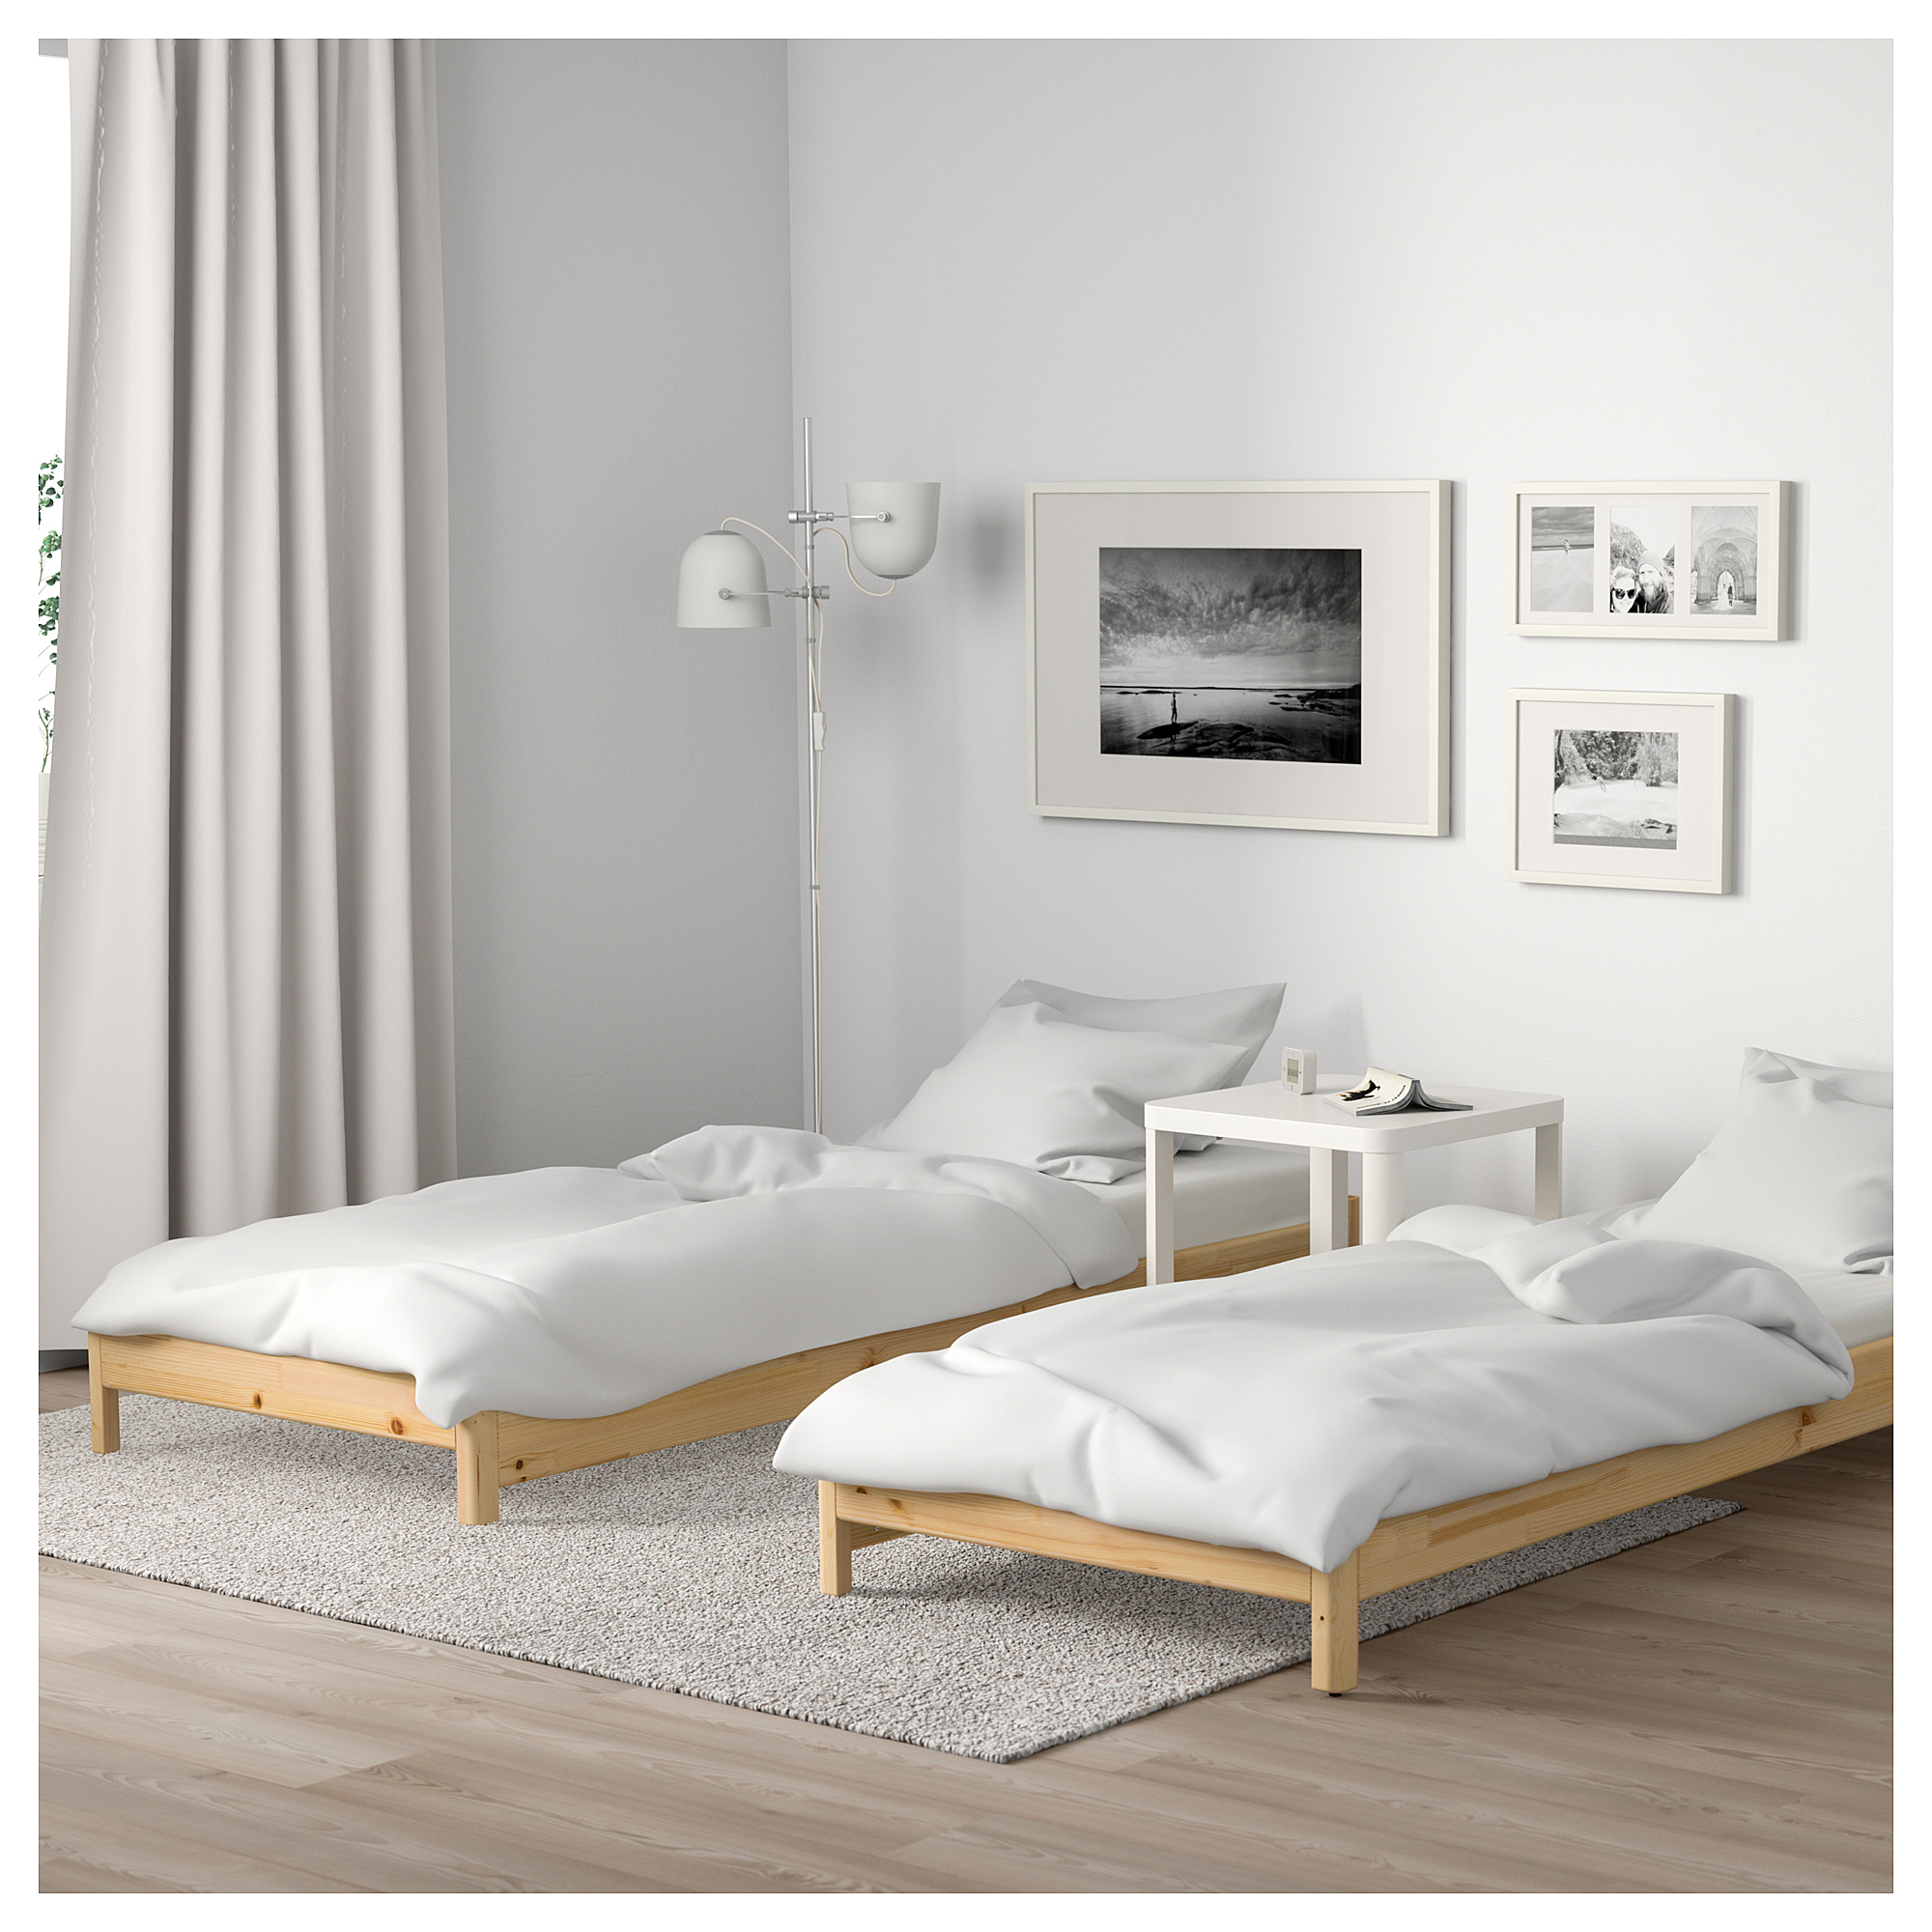 Stackable Twin Beds This Stackable Bed From Ikea Is A Brilliant Solution For Small